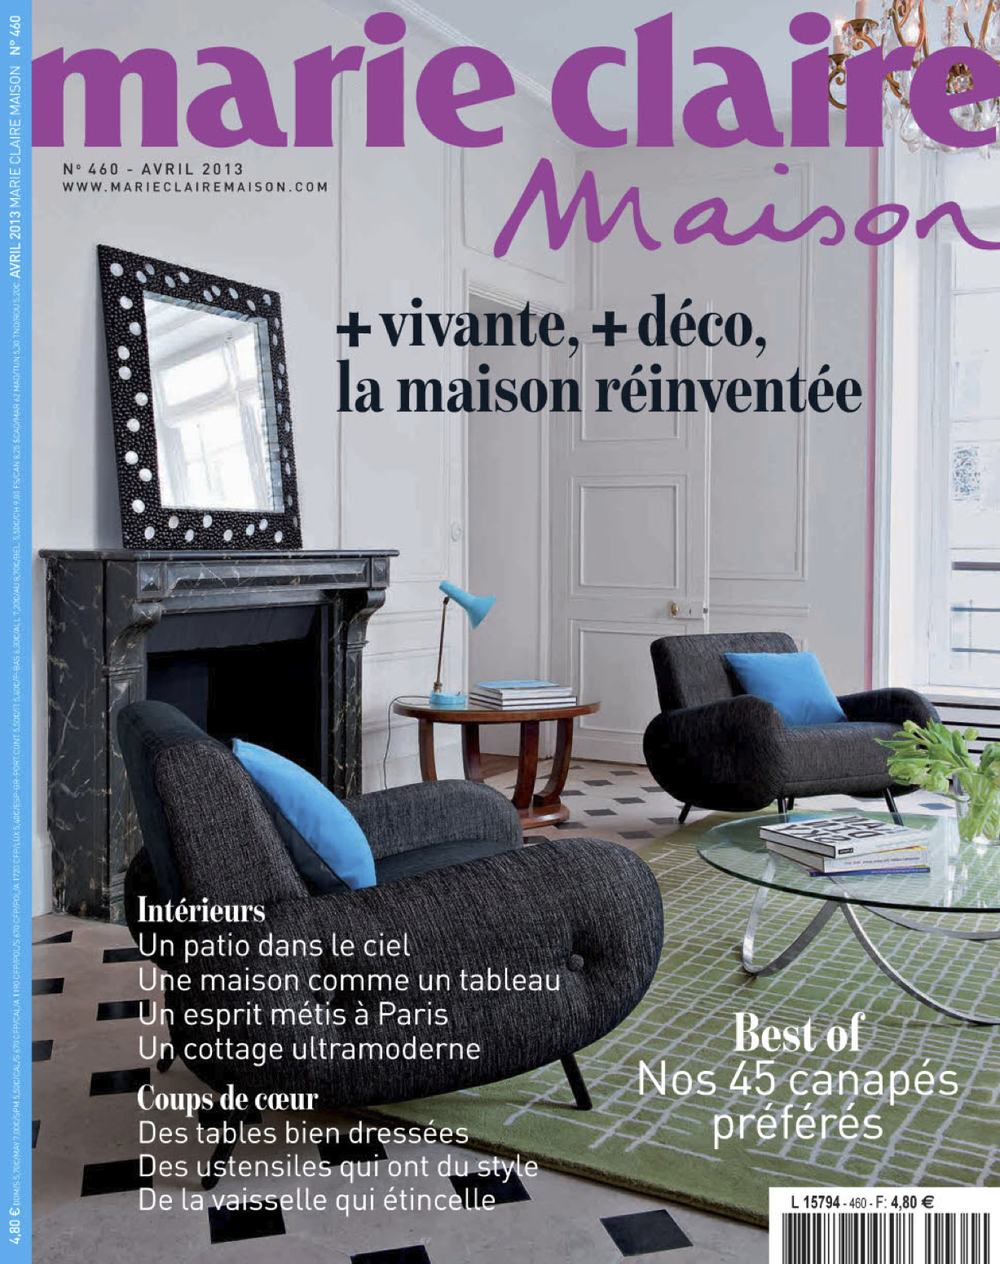 Marie_Claire_Maison_No.460_-_cover.jpg